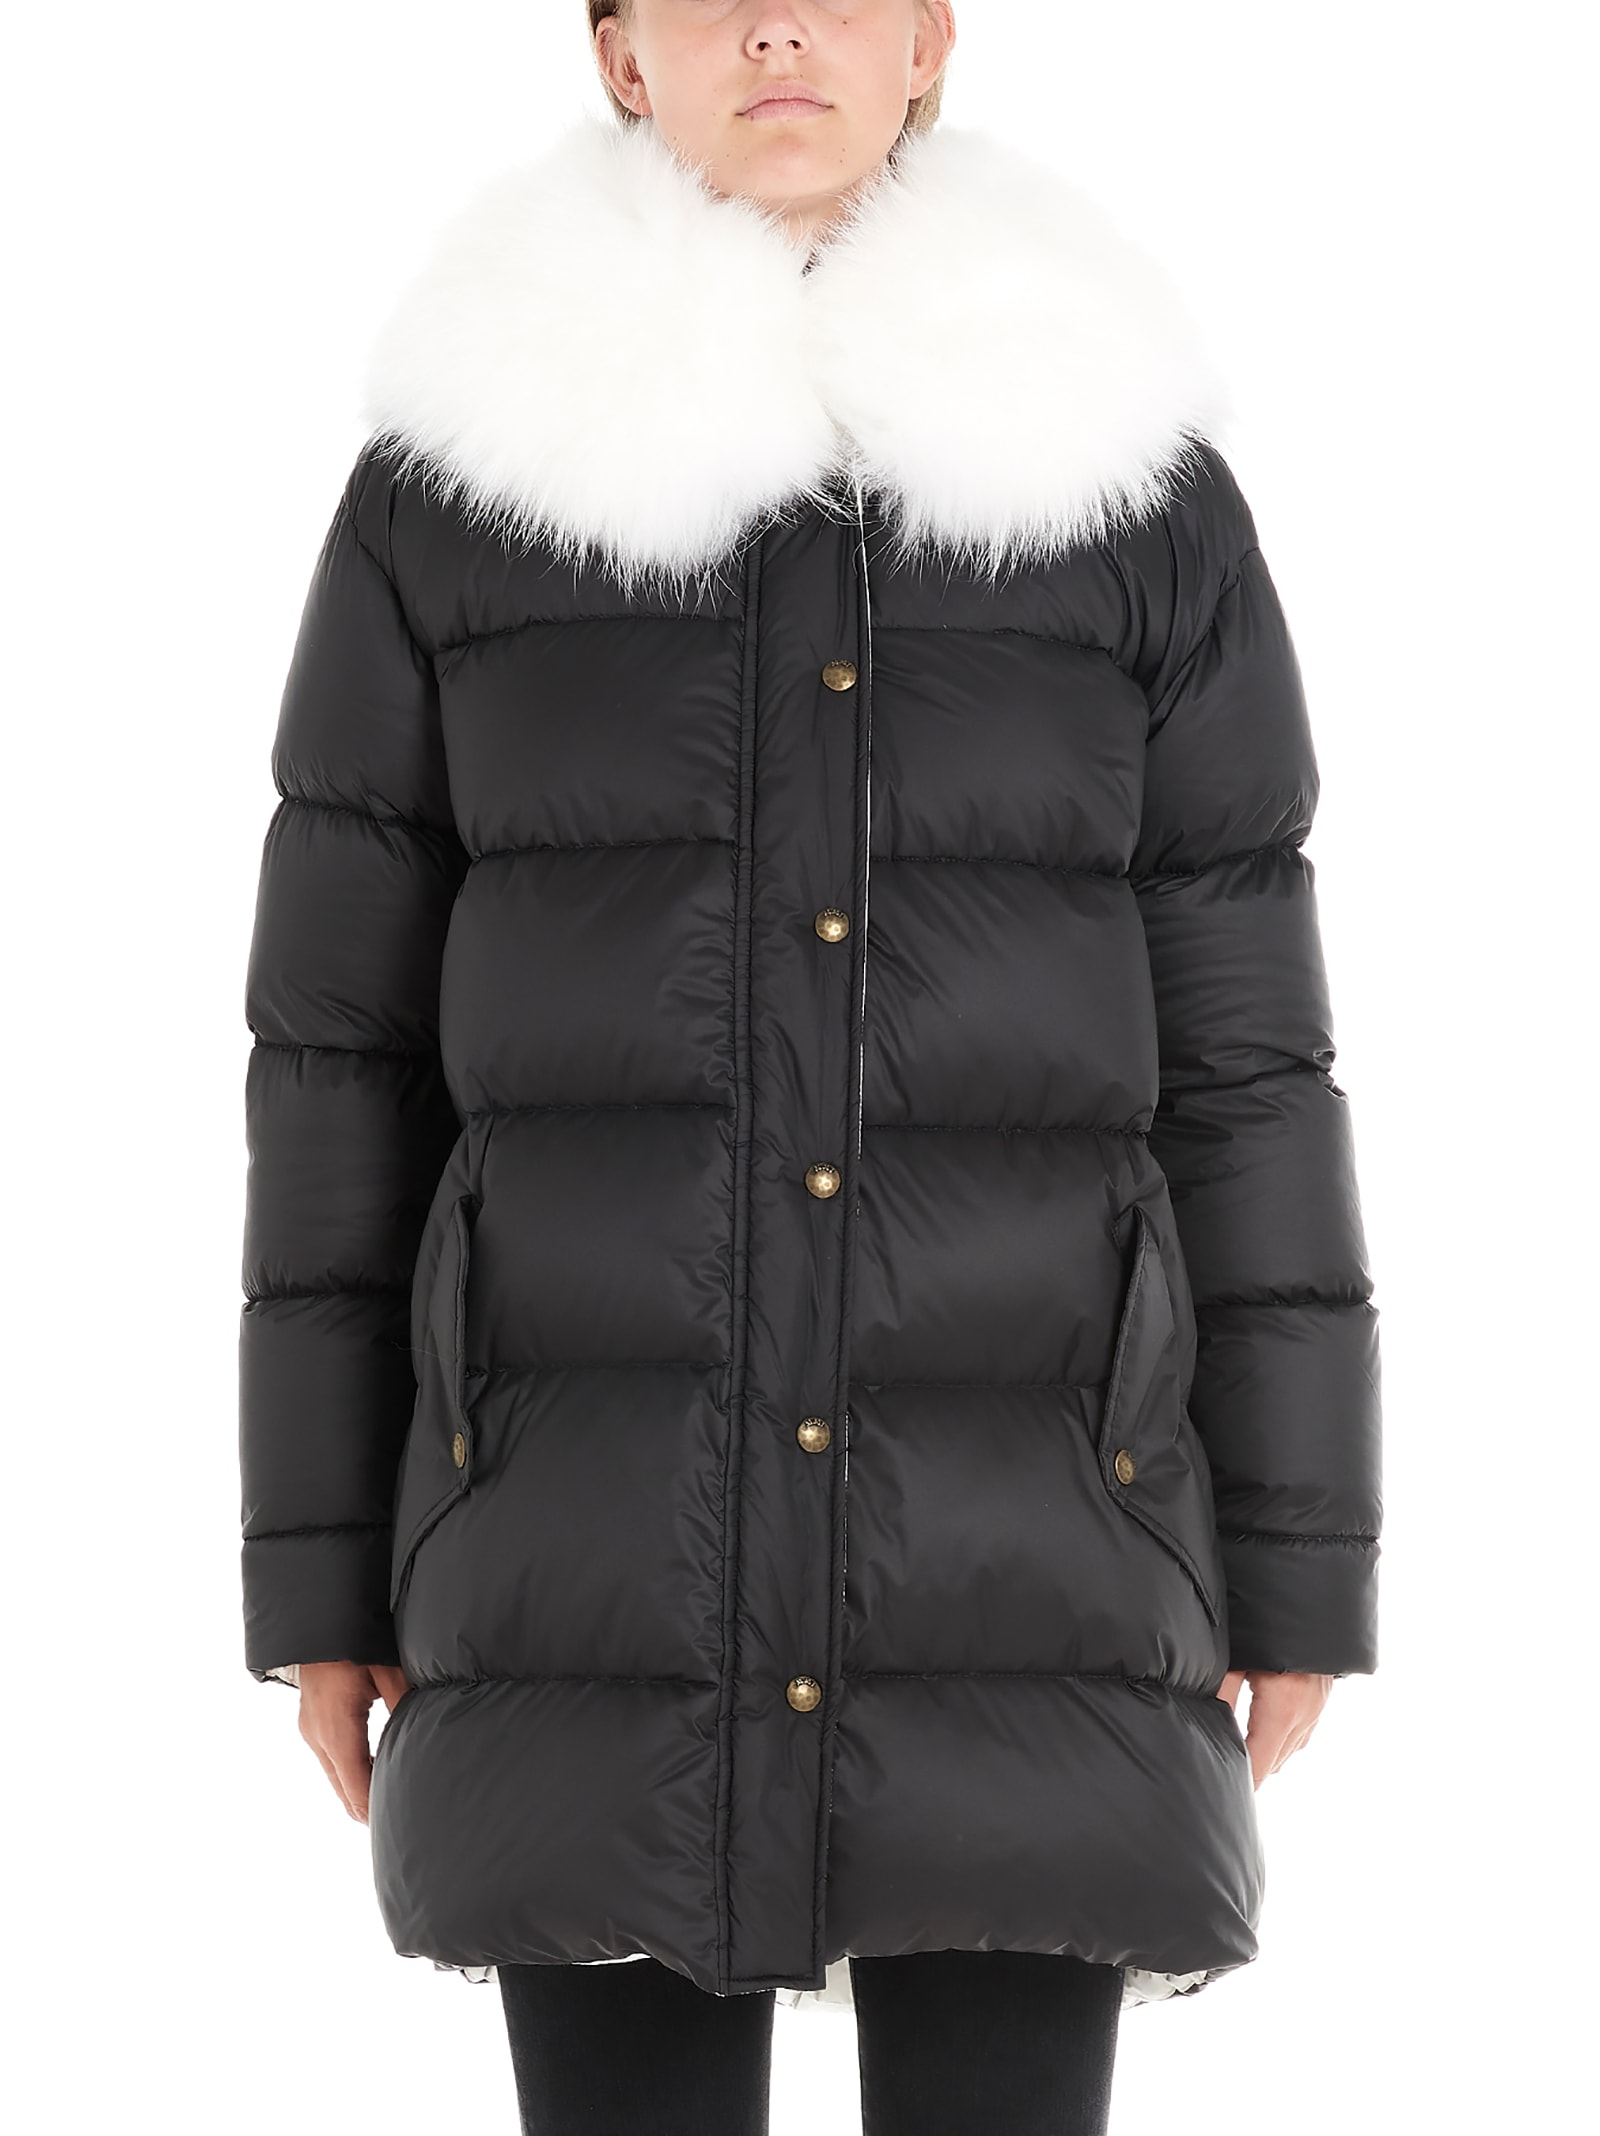 Mr & Mrs Italy a-line Puffer Jacket